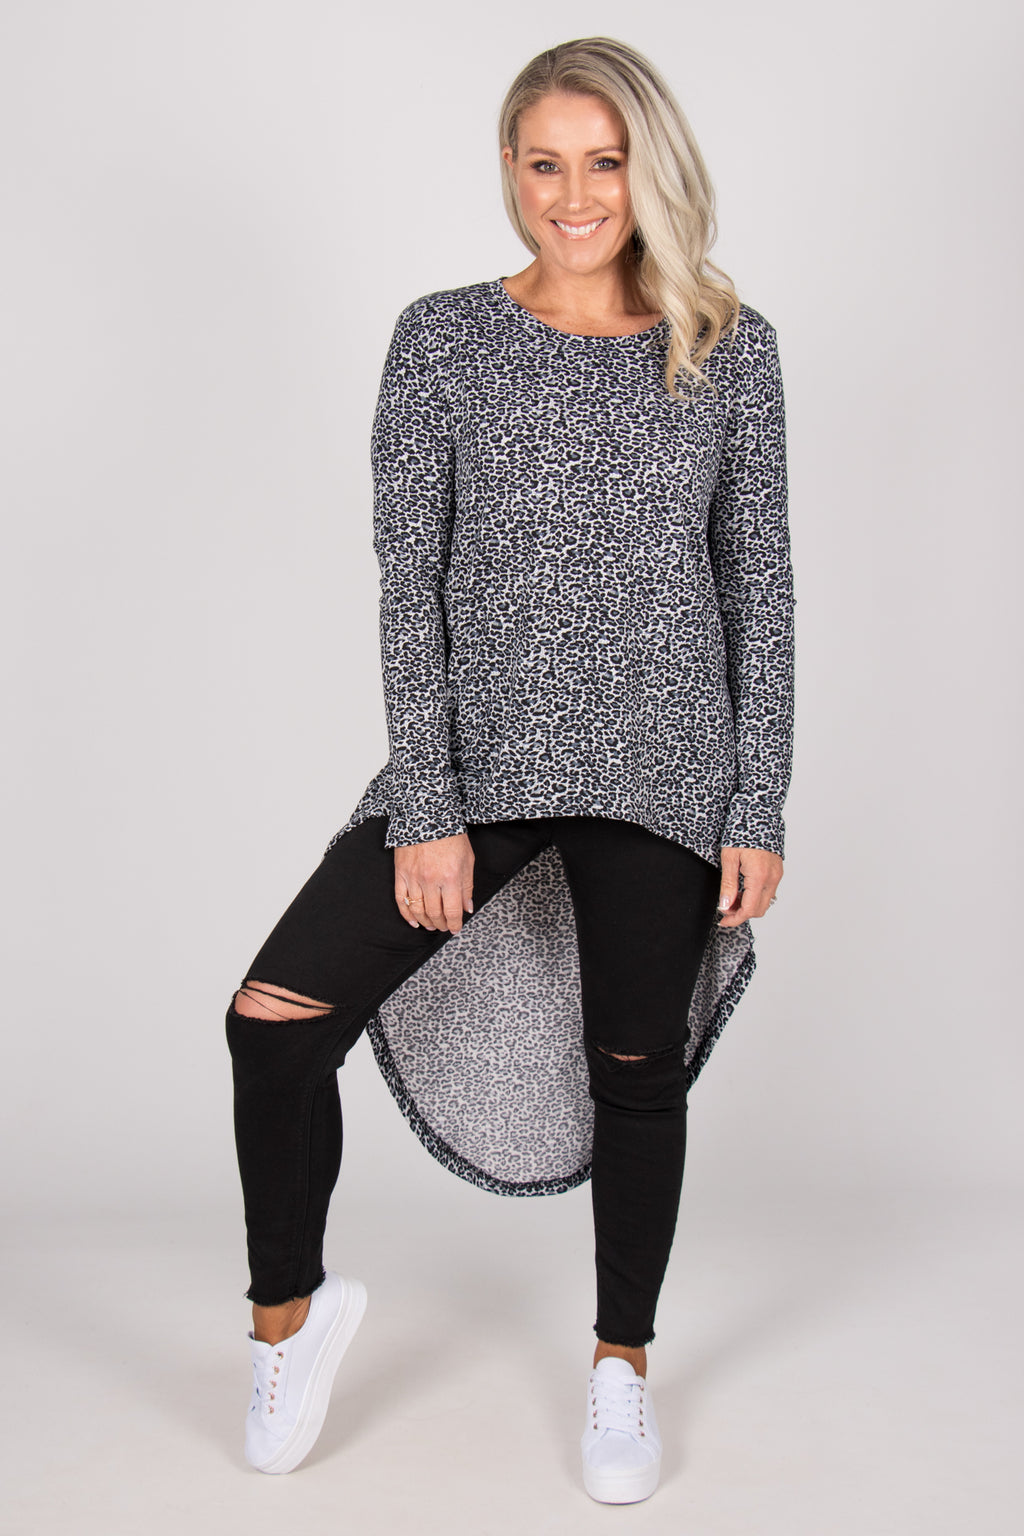 Cove Top in Gunmetal Leopard